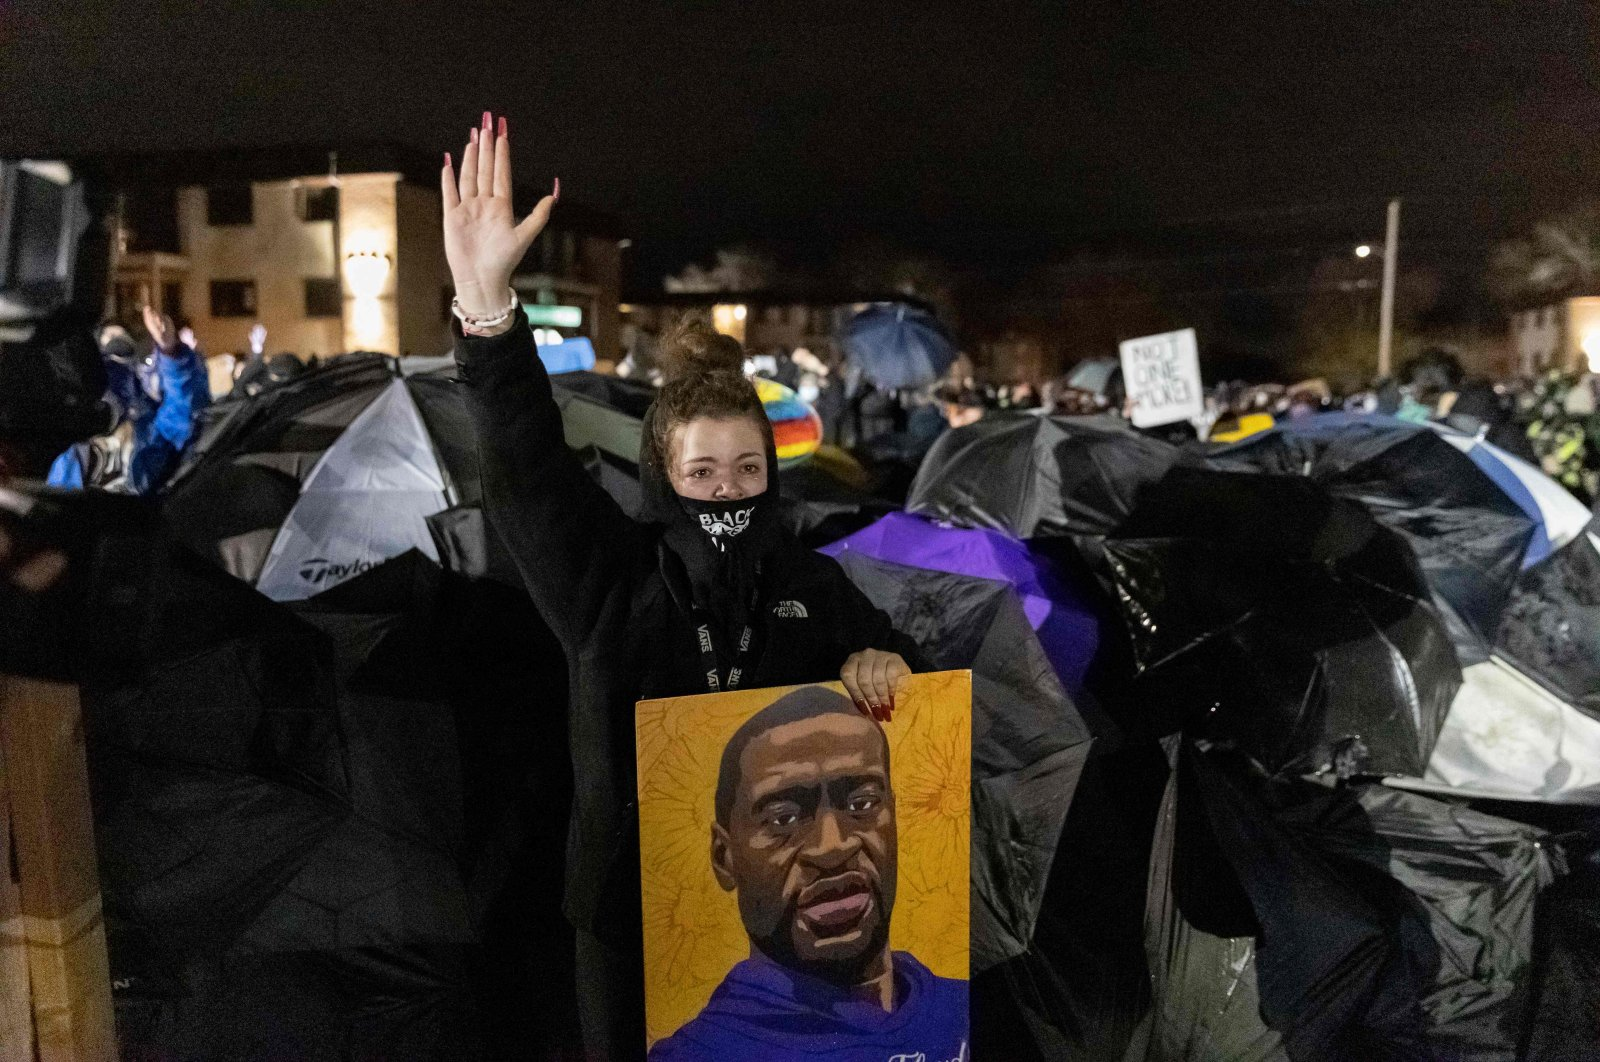 A demonstrator holding a poster of George Floyd, raises her hand toward a line of police officers outside the Brooklyn Center police station while protesting the death of Daunte Wright who was shot and killed by a police officer in Brooklyn Center, Minnesota, April 14, 2021. (AFP Photo)